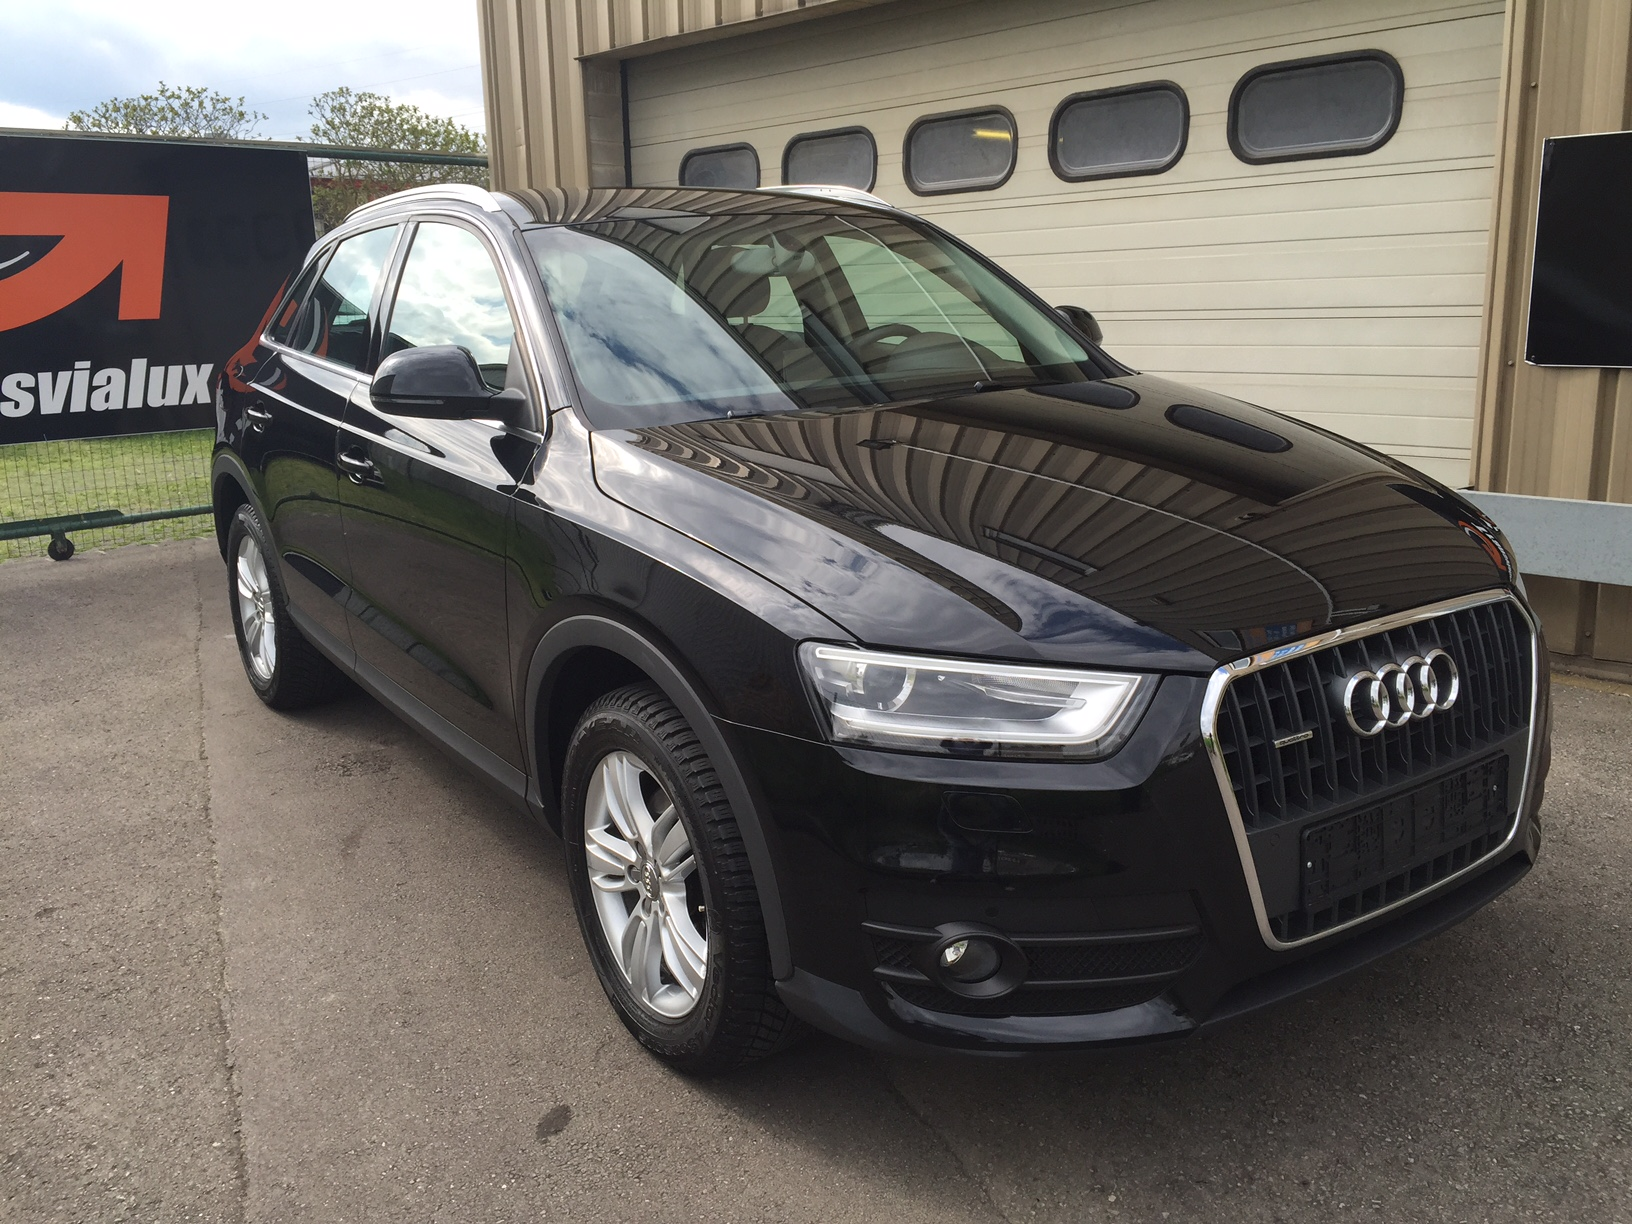 audi q3 2 0 tdi 177 ambition luxe quattro s tronic 7 transvialux automobiles. Black Bedroom Furniture Sets. Home Design Ideas